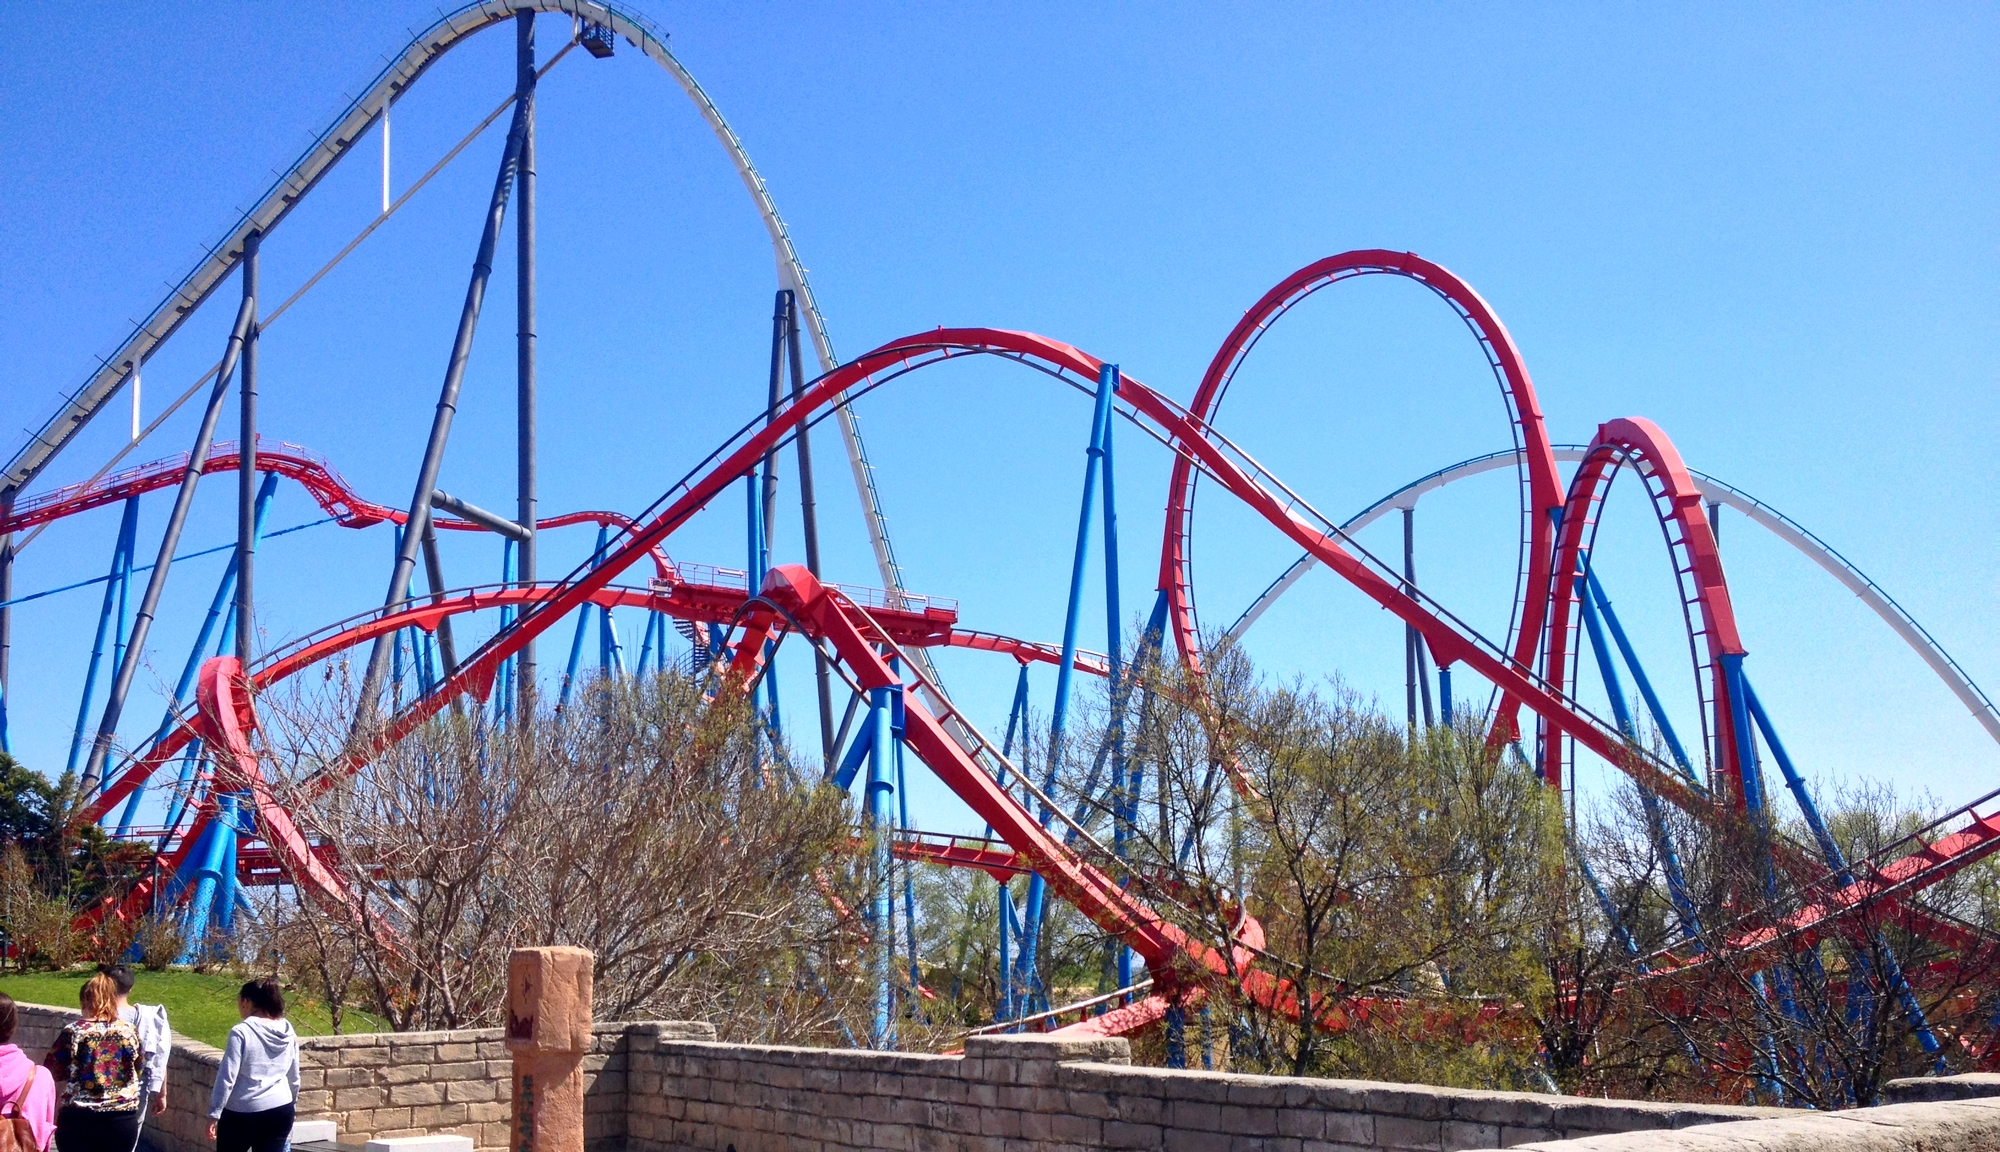 The Dragon Khan rollercoaster in Port Aventura - Salou, Spain